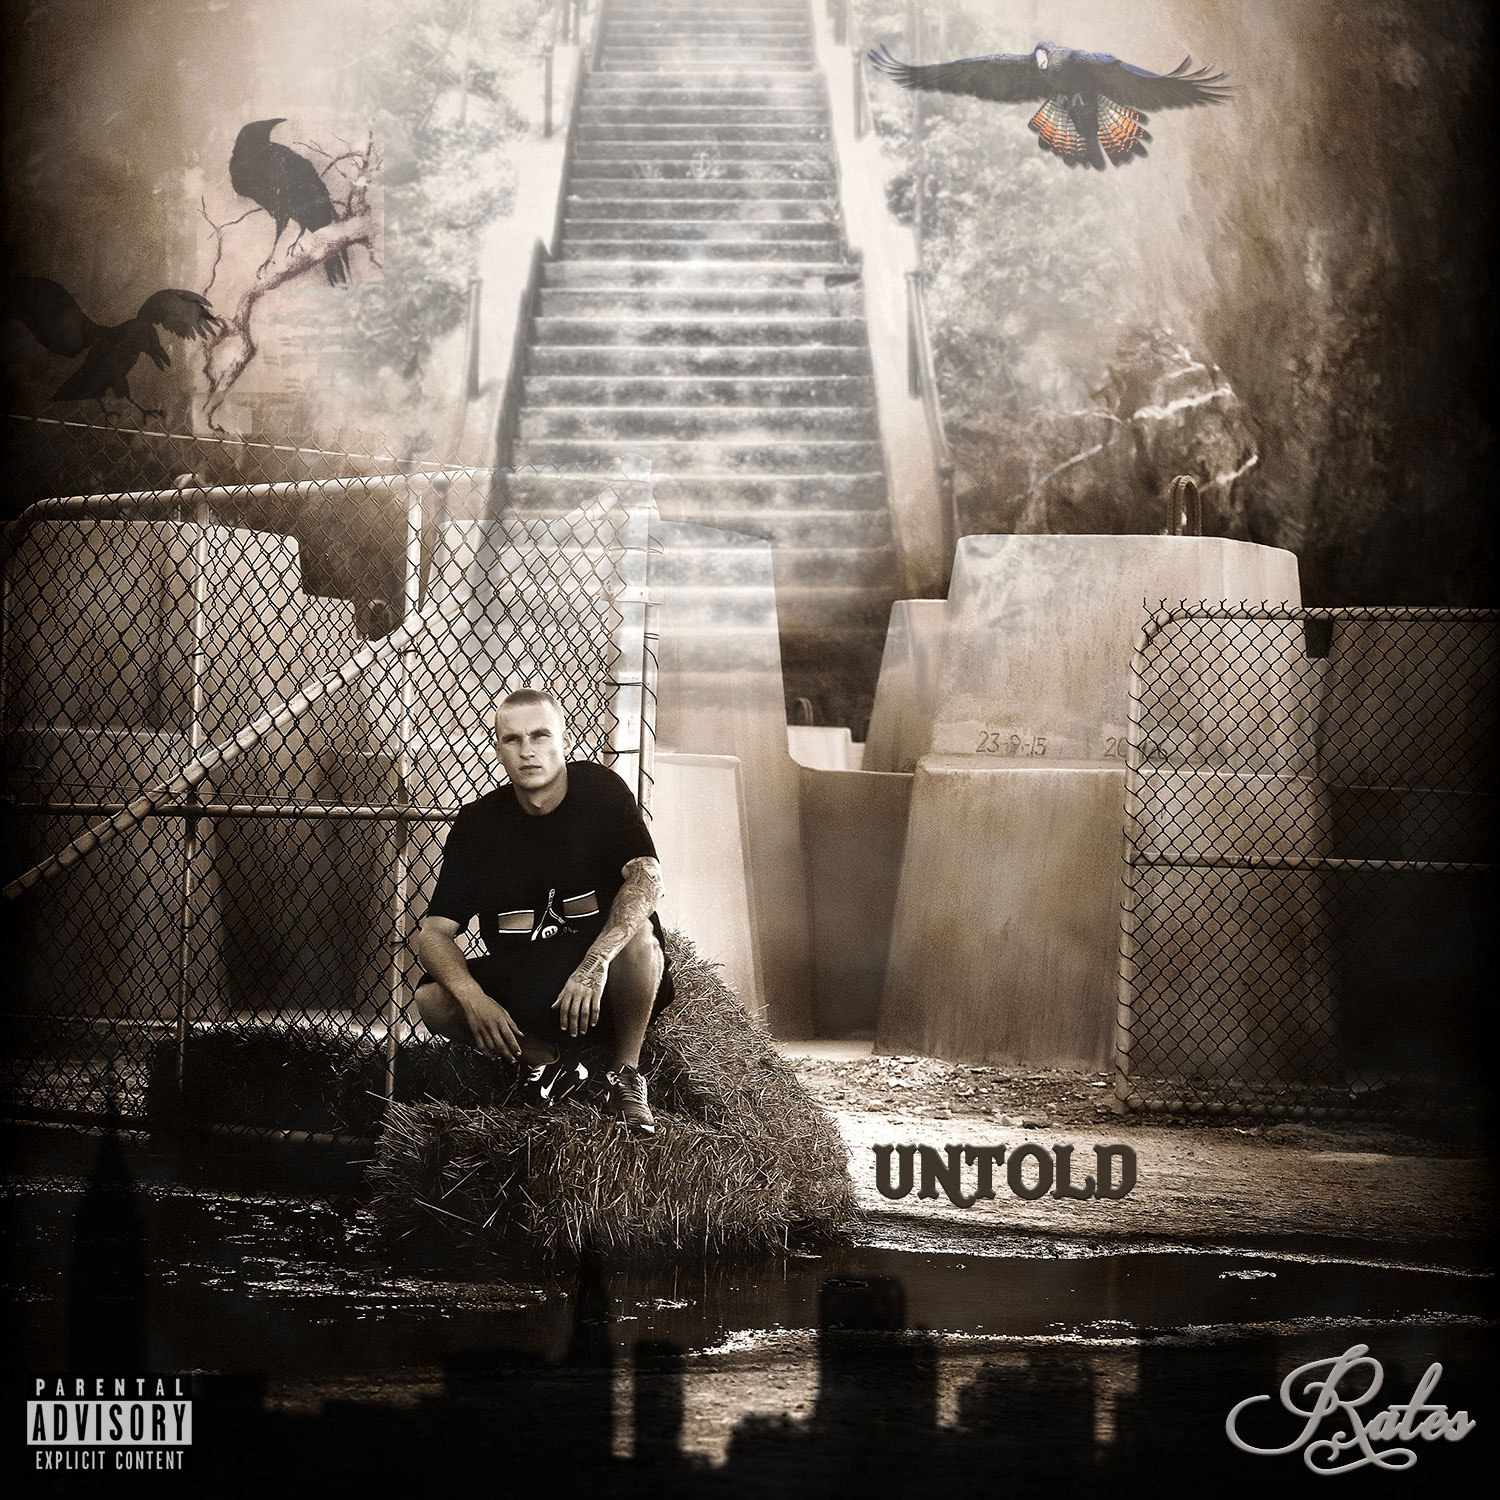 Rates-Untold-LP-cover